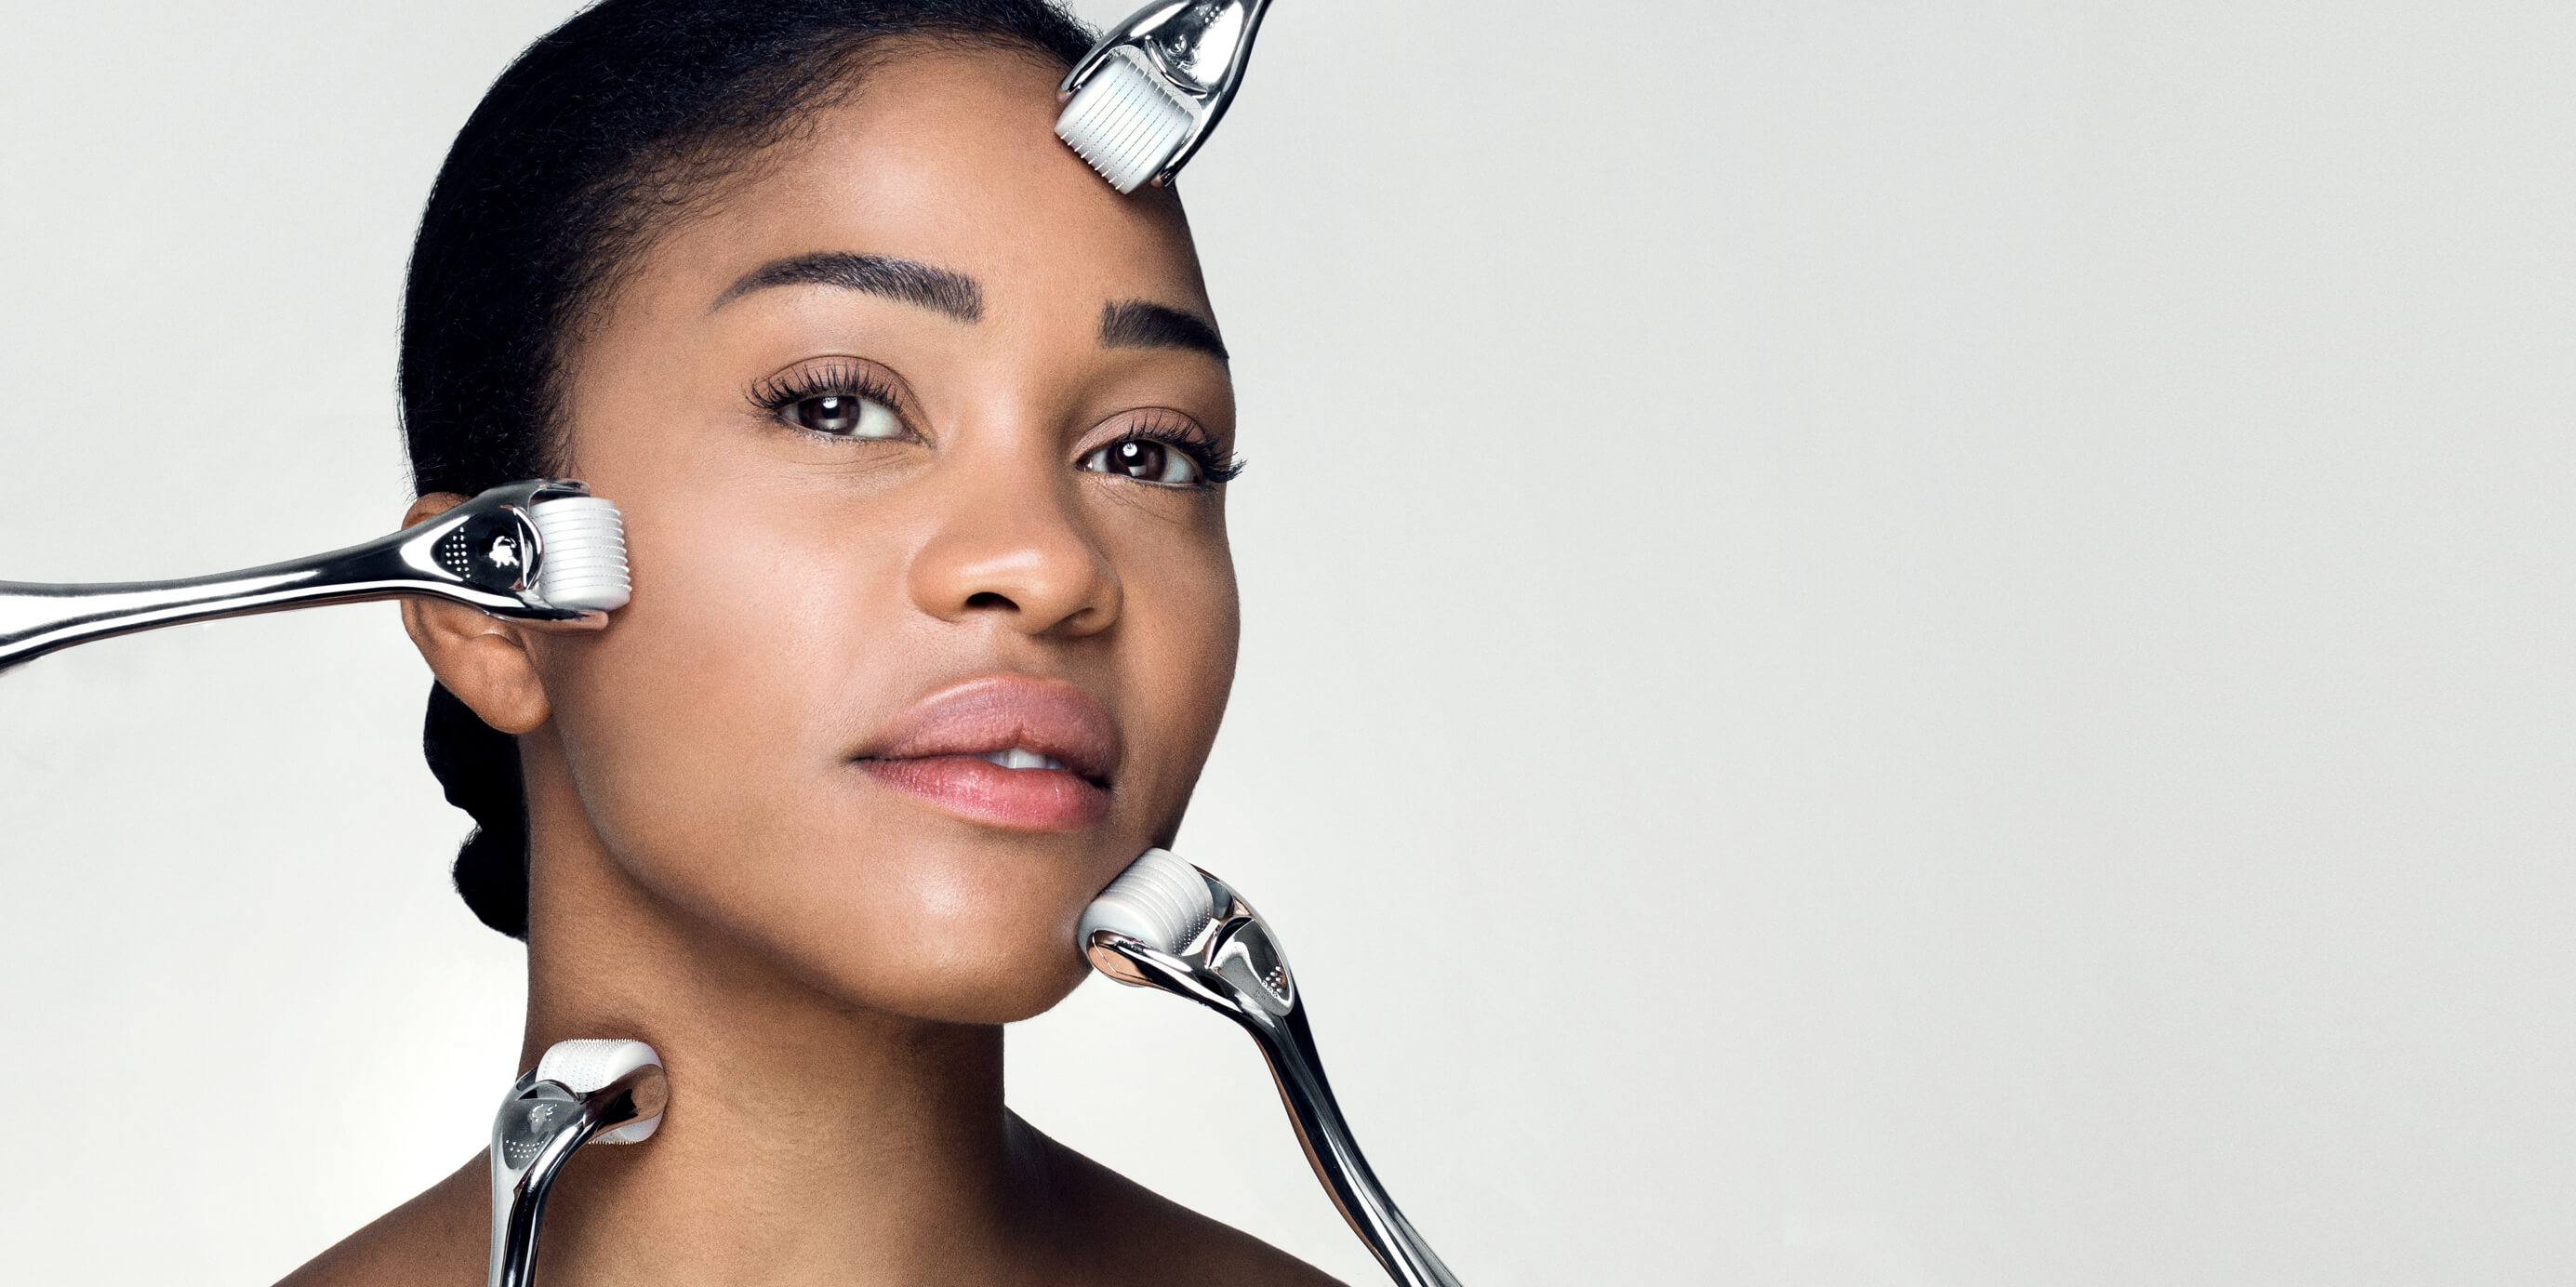 Microneedling 101: How, Why, When?